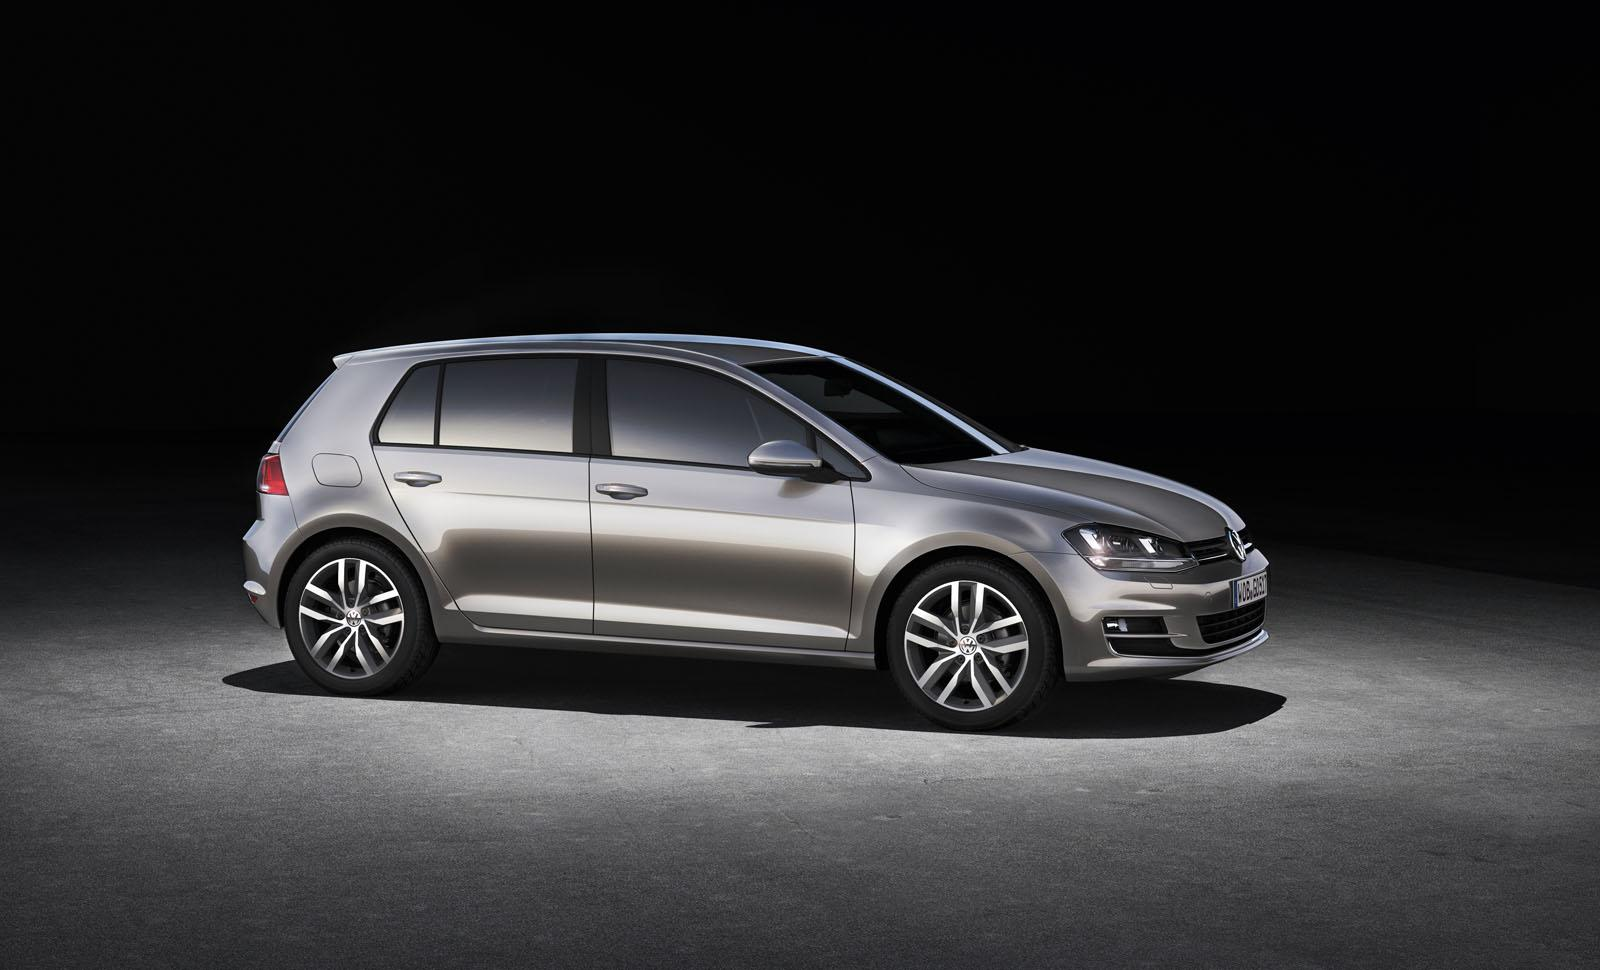 vw to build golf vii in mexico in first quarter of 2014 autoevolution. Black Bedroom Furniture Sets. Home Design Ideas